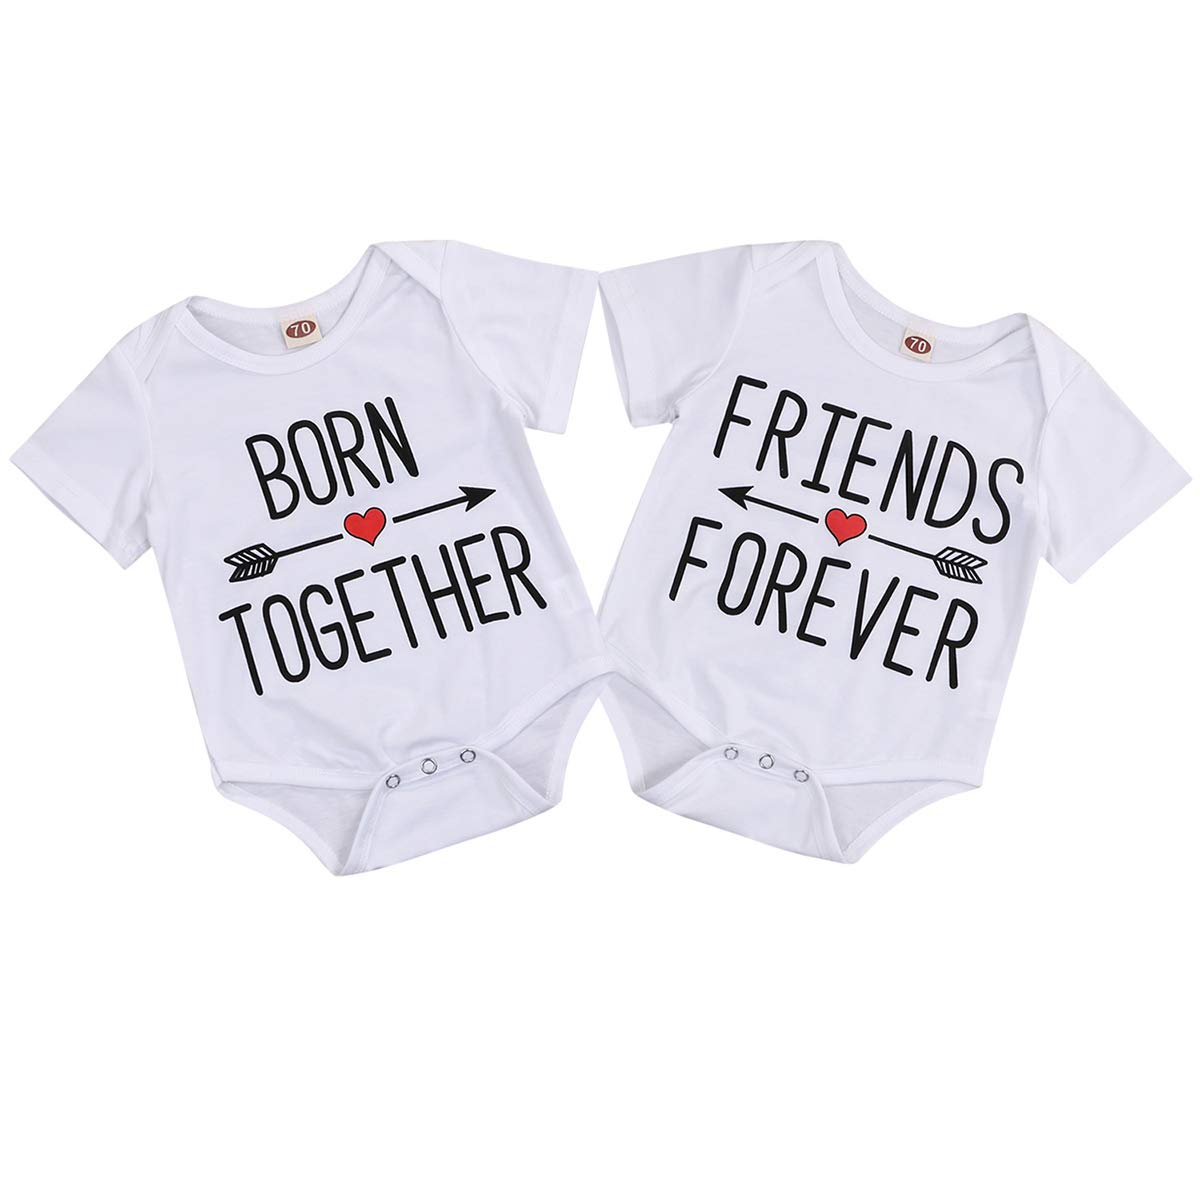 Twins Siblings Newborn Baby Romper Outfit Born Together Friends Forever Matching Bodysuit Clothes